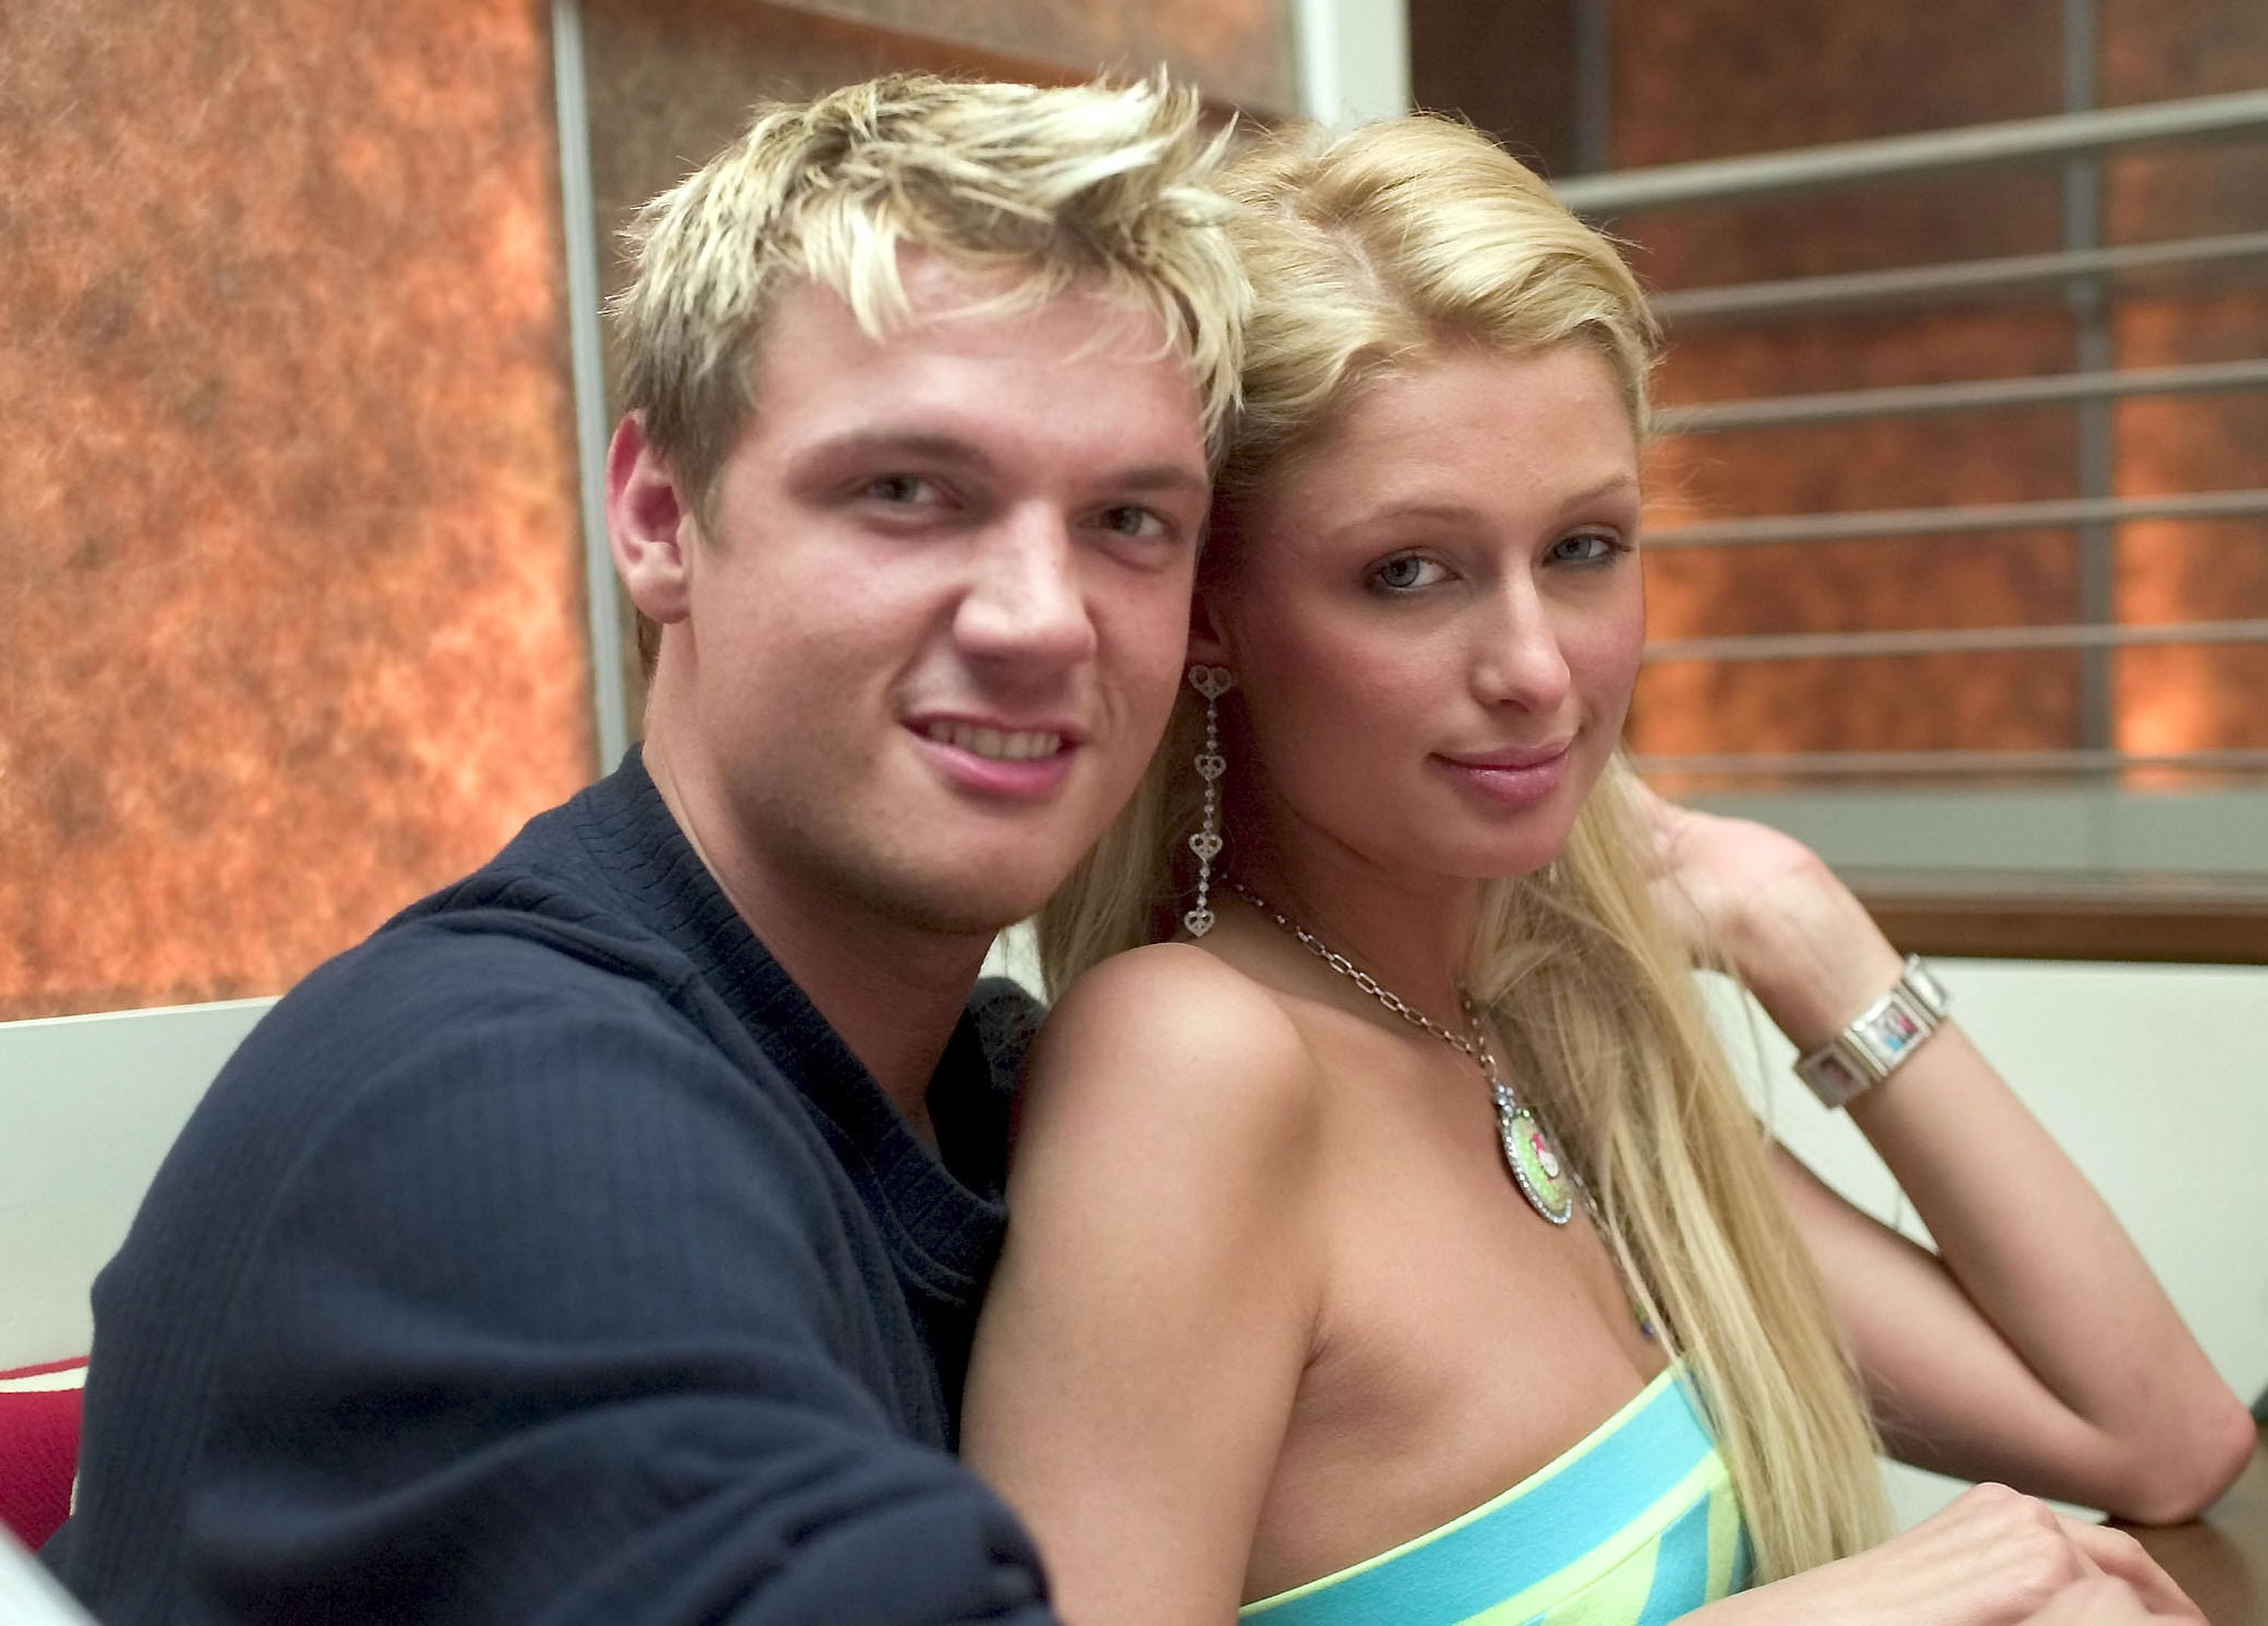 paris-hilton-nick-1533228629676-1533228632411.jpg